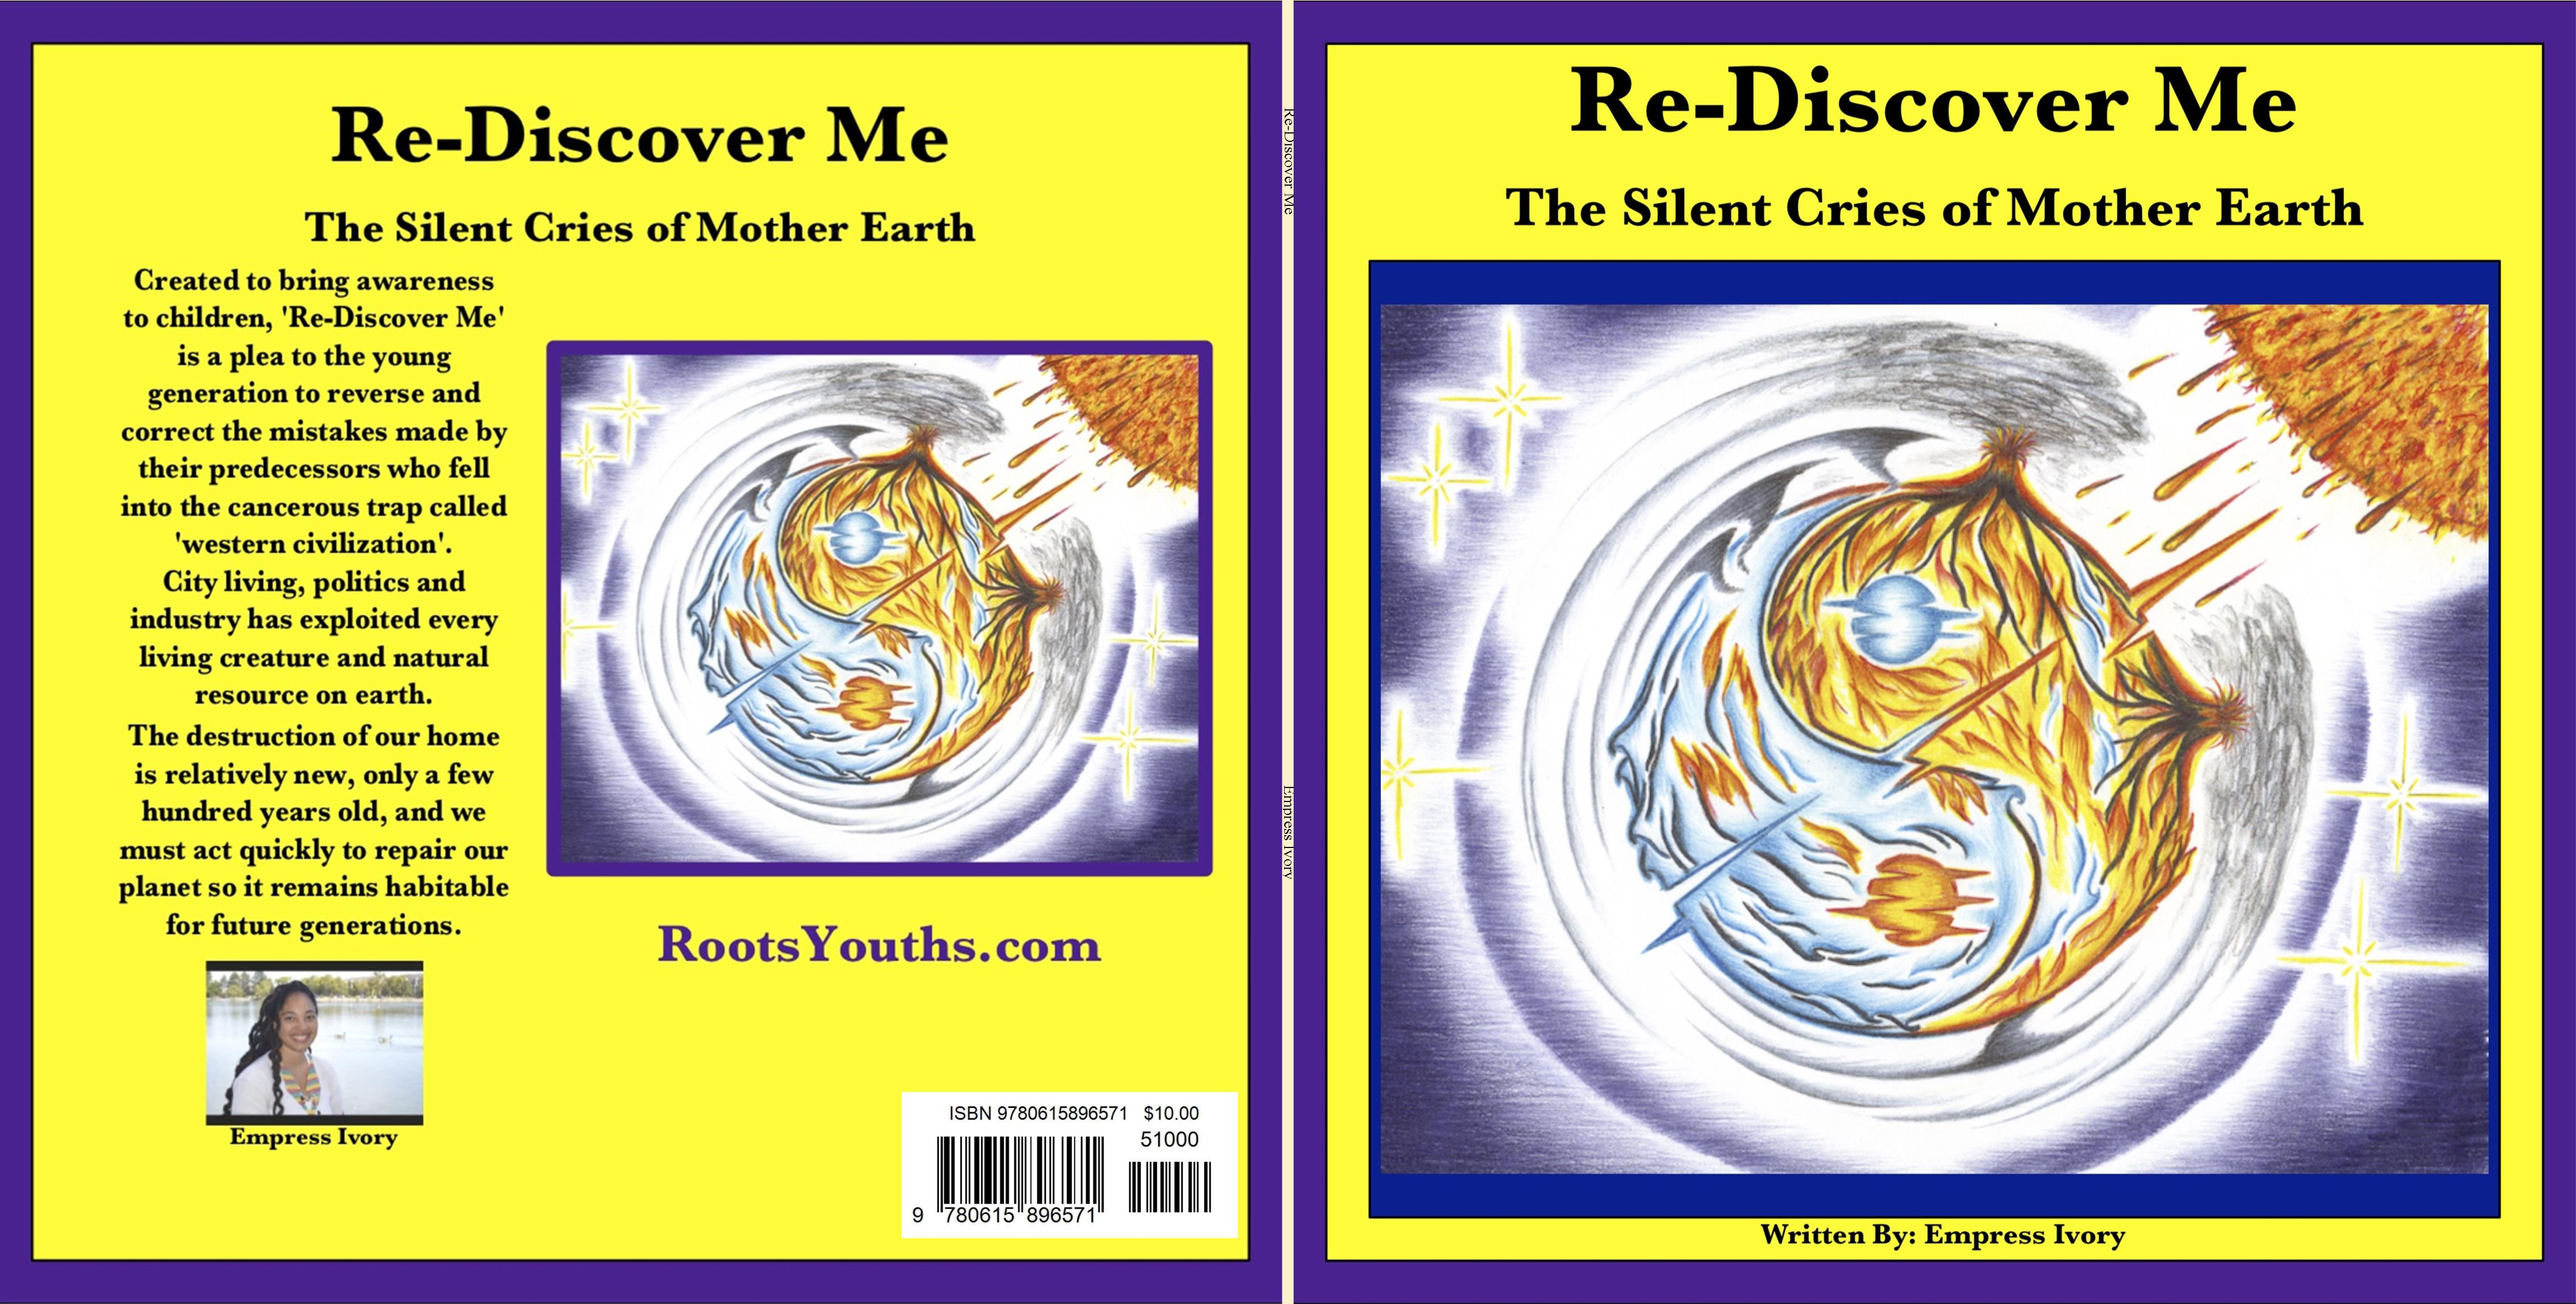 Re-Discover Me cover image